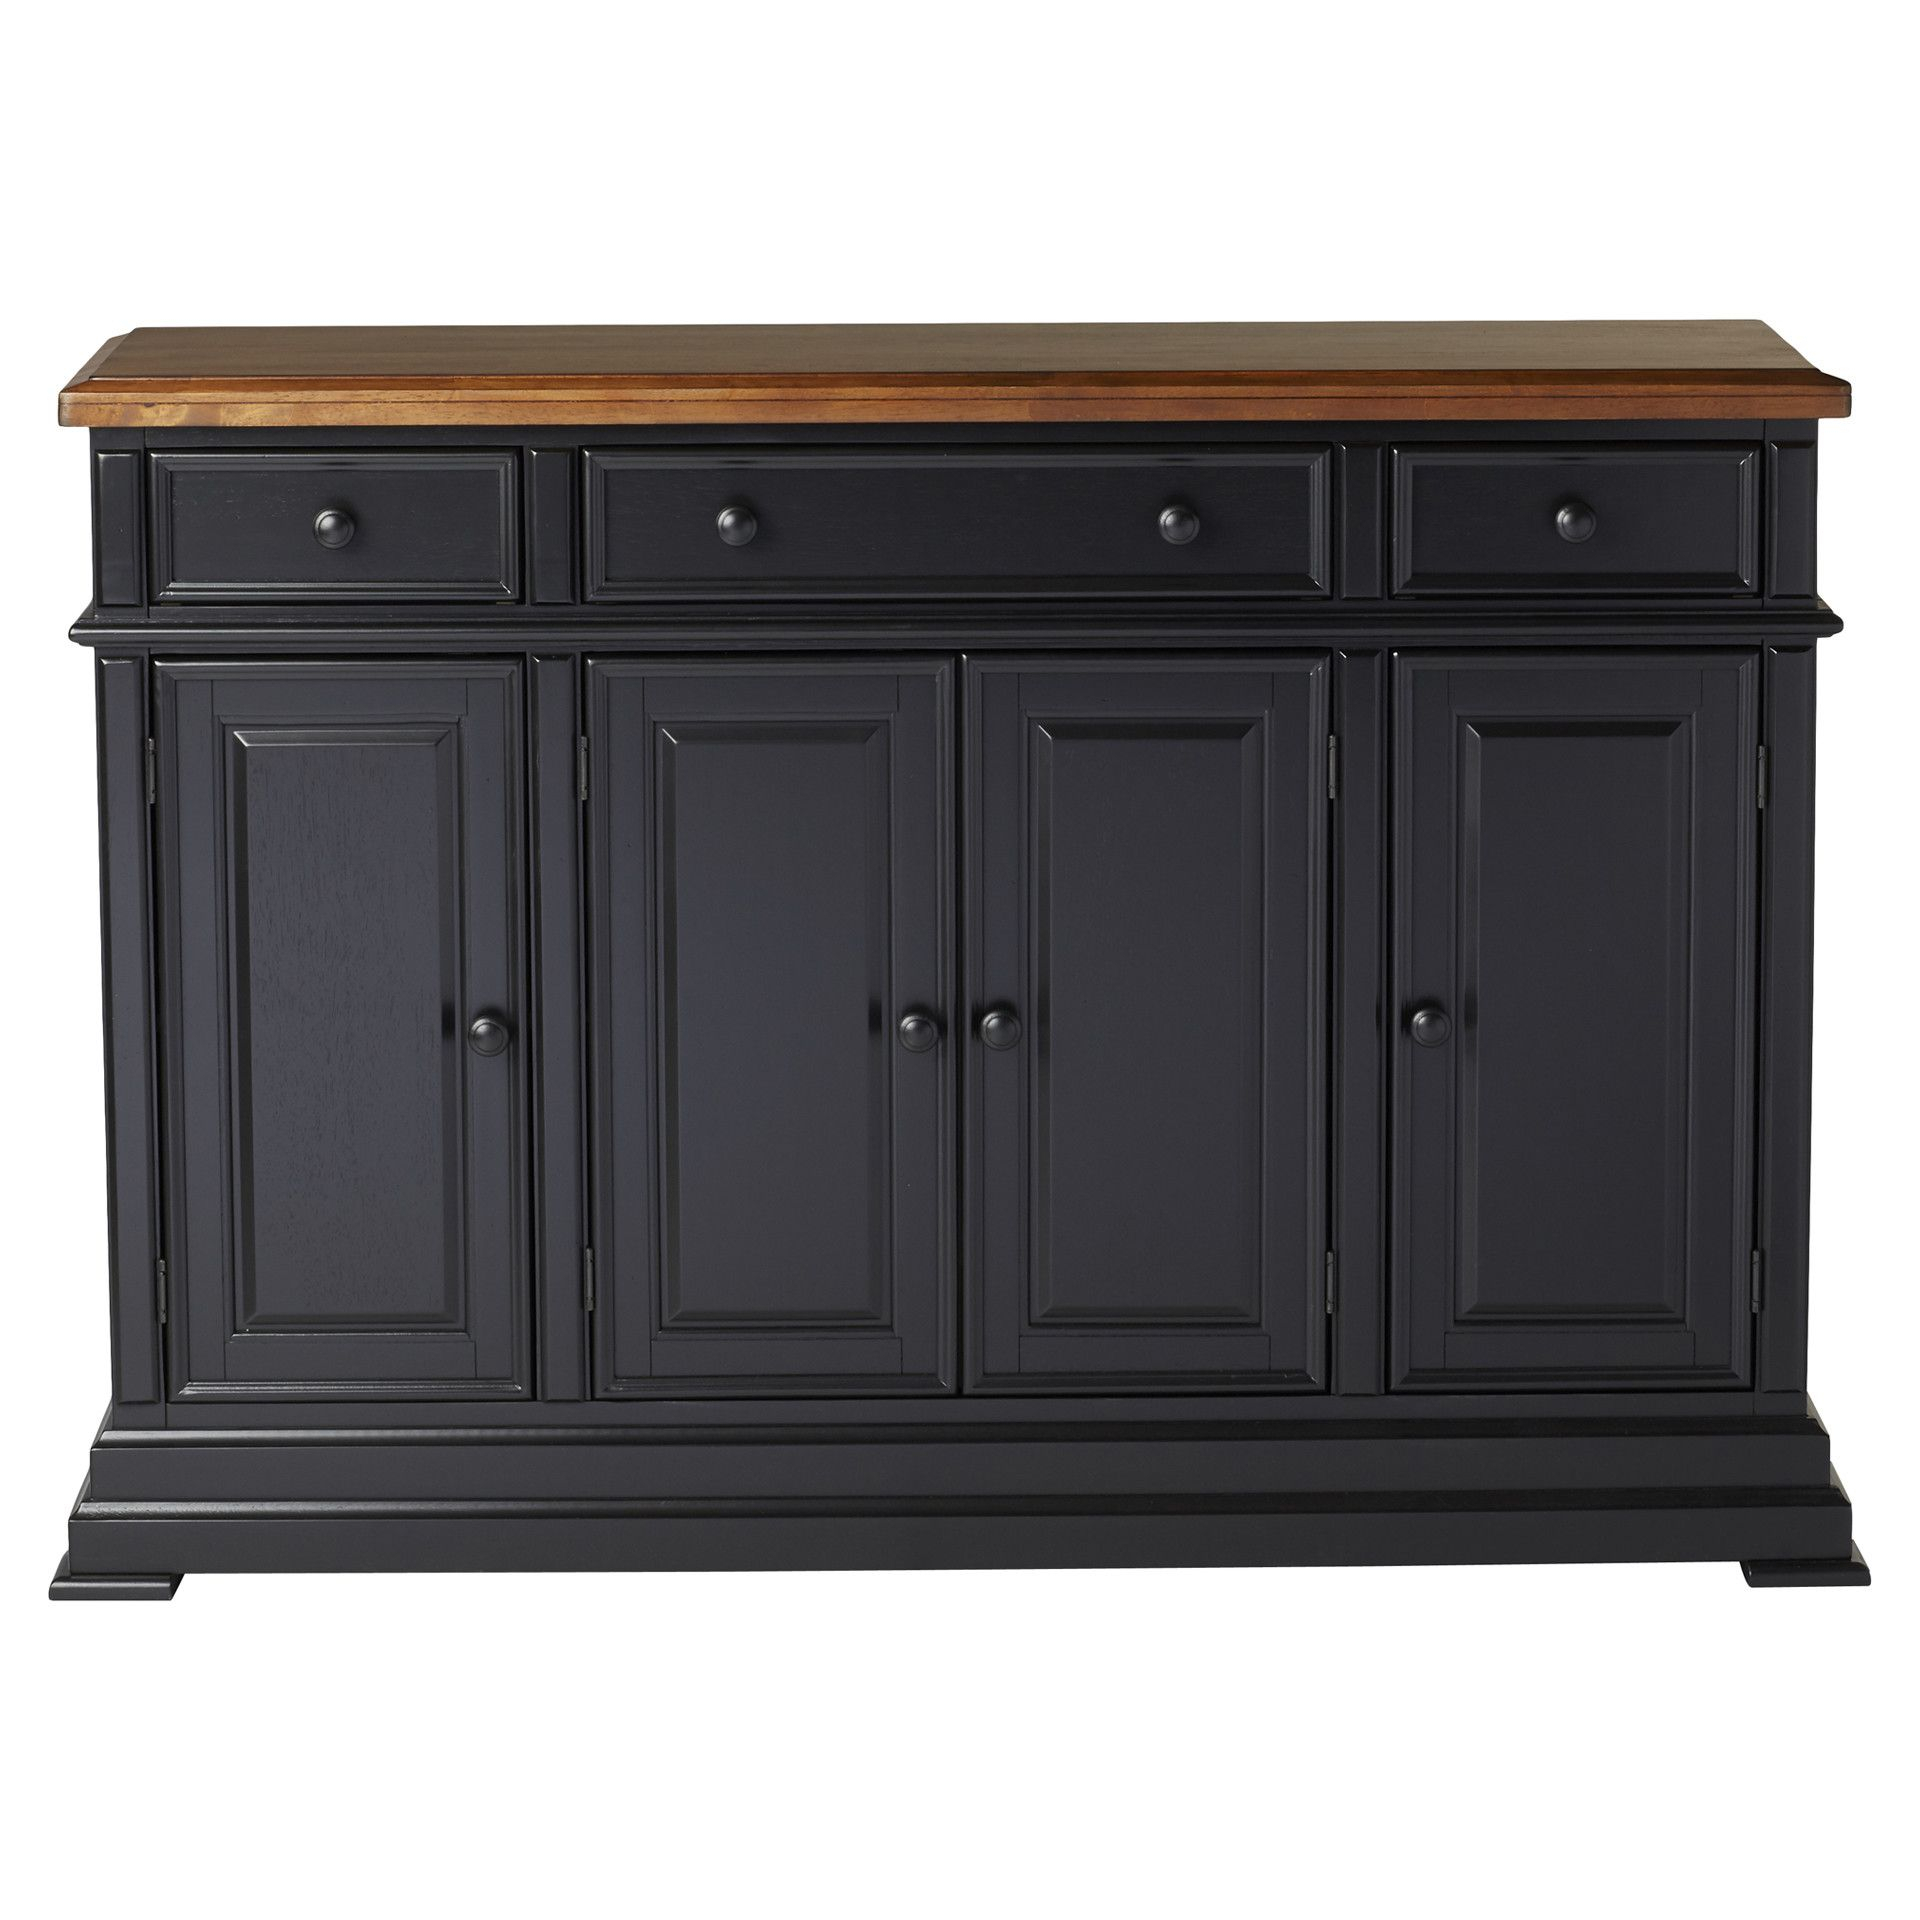 Courtdale Sideboard | Home | Sideboard, Buffet Cabinet Intended For Current Courtdale Sideboards (#11 of 20)